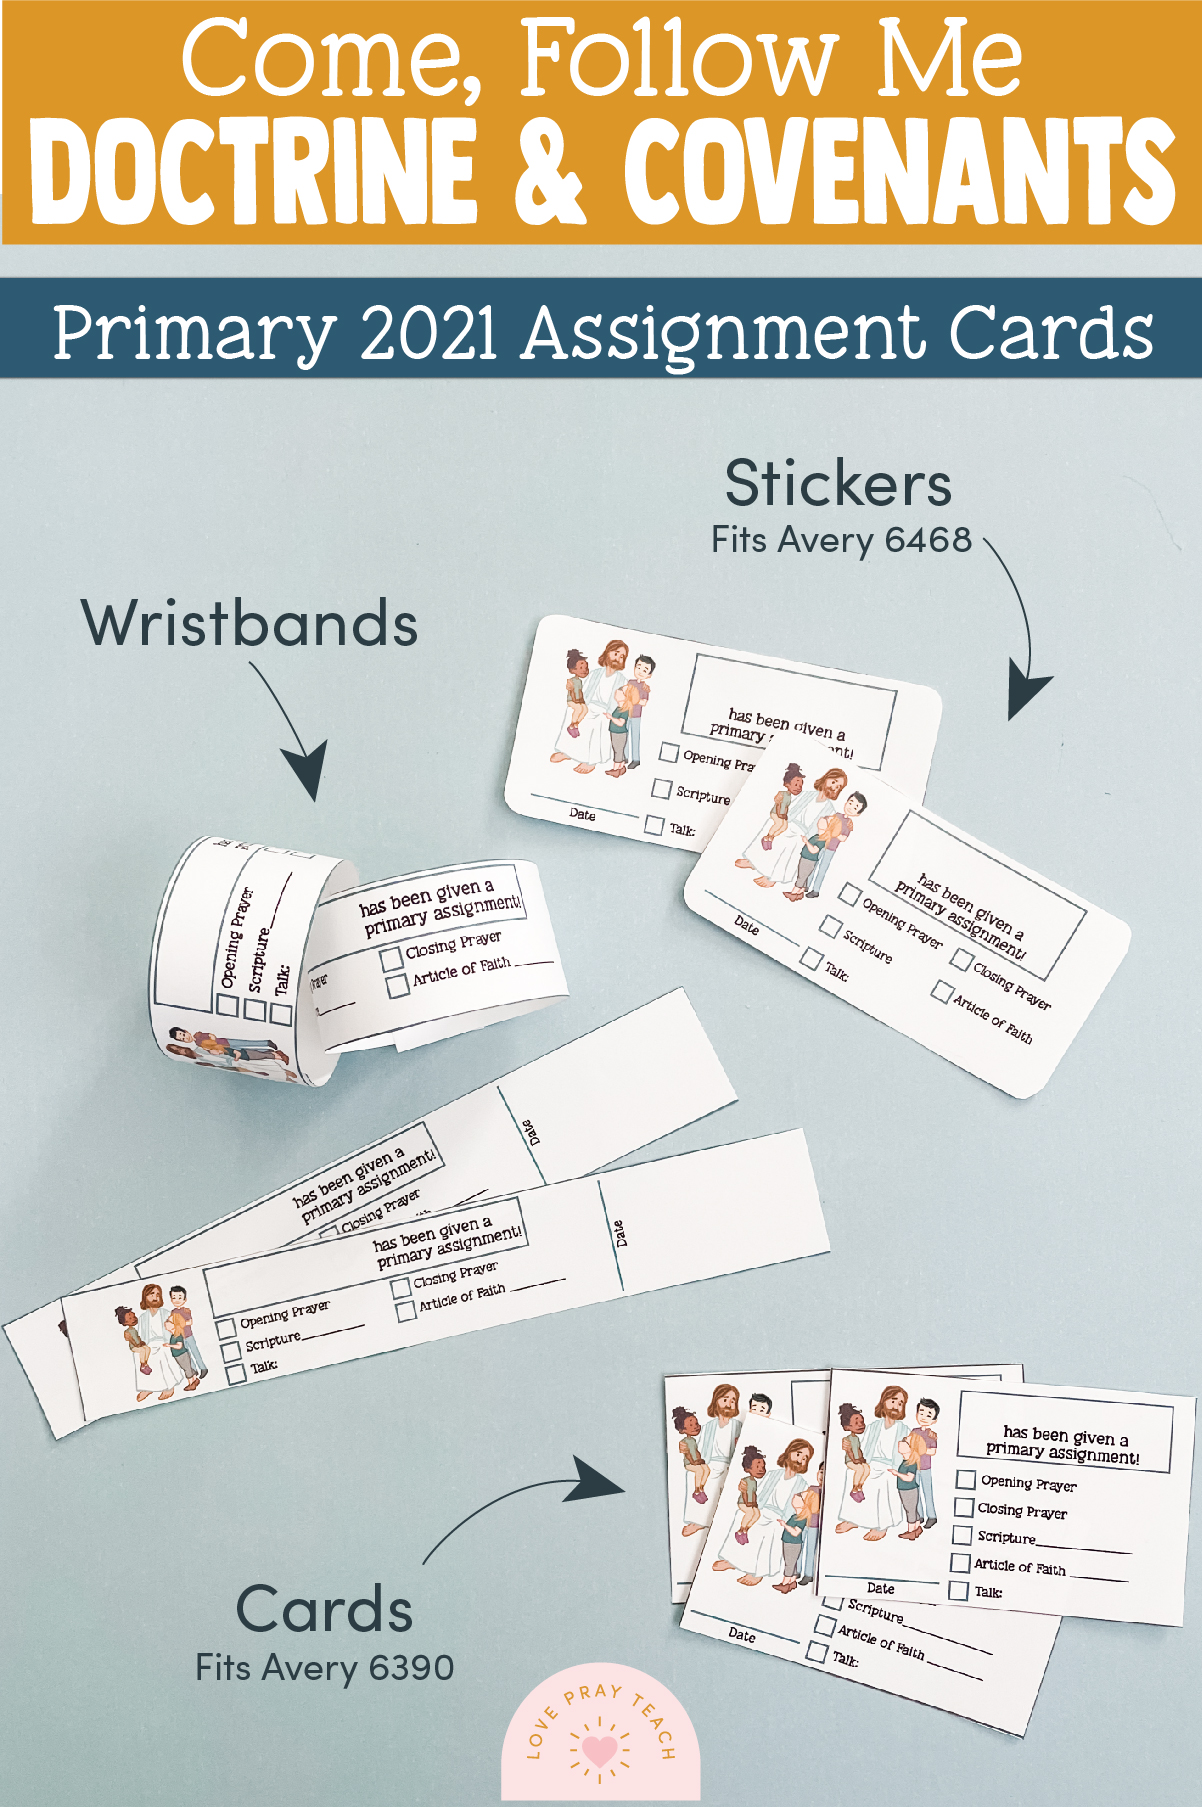 2021 Primary Assignment Wristbands and cards www.LovePrayTeach.com